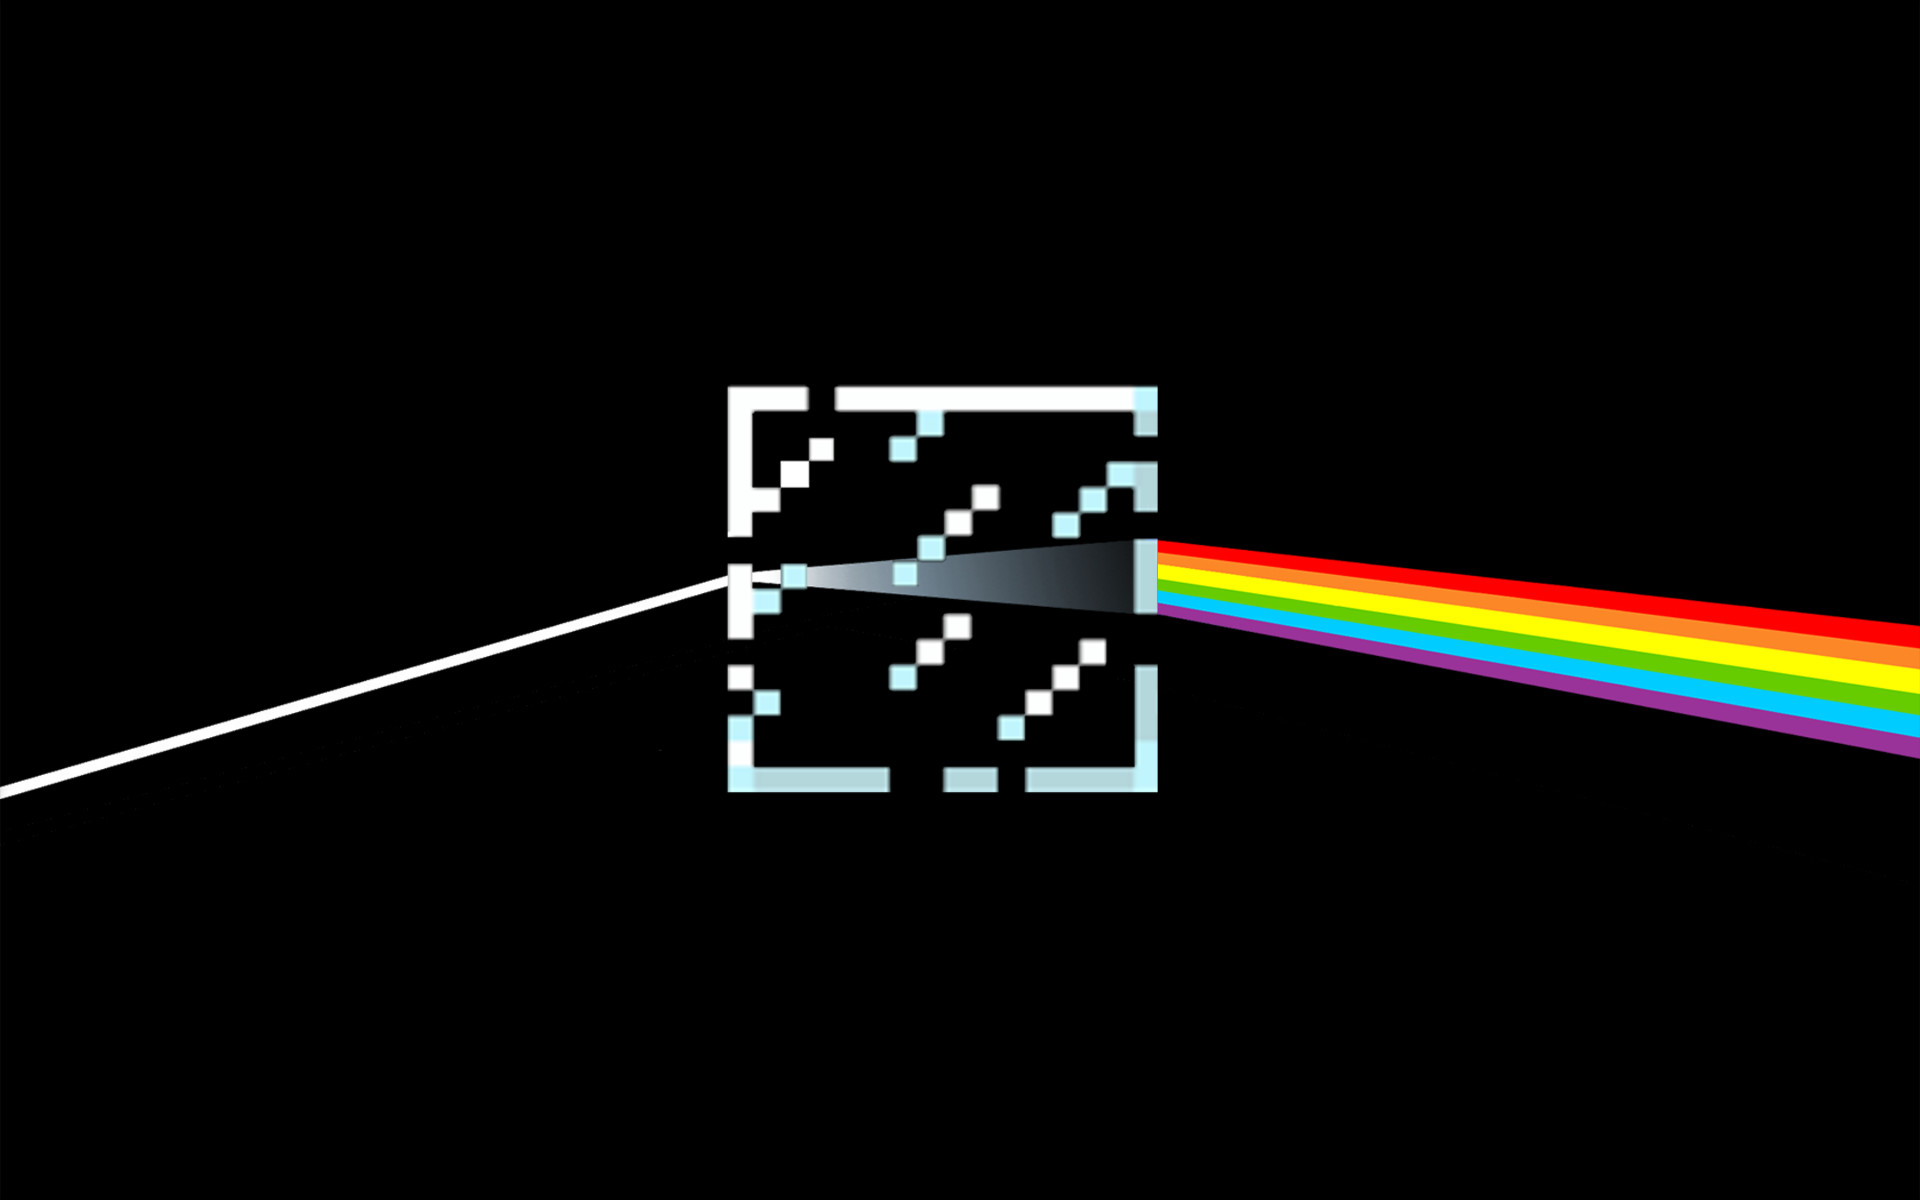 1920x1200 Pink Floyd Wallpaper Hd wallpaper - 880659